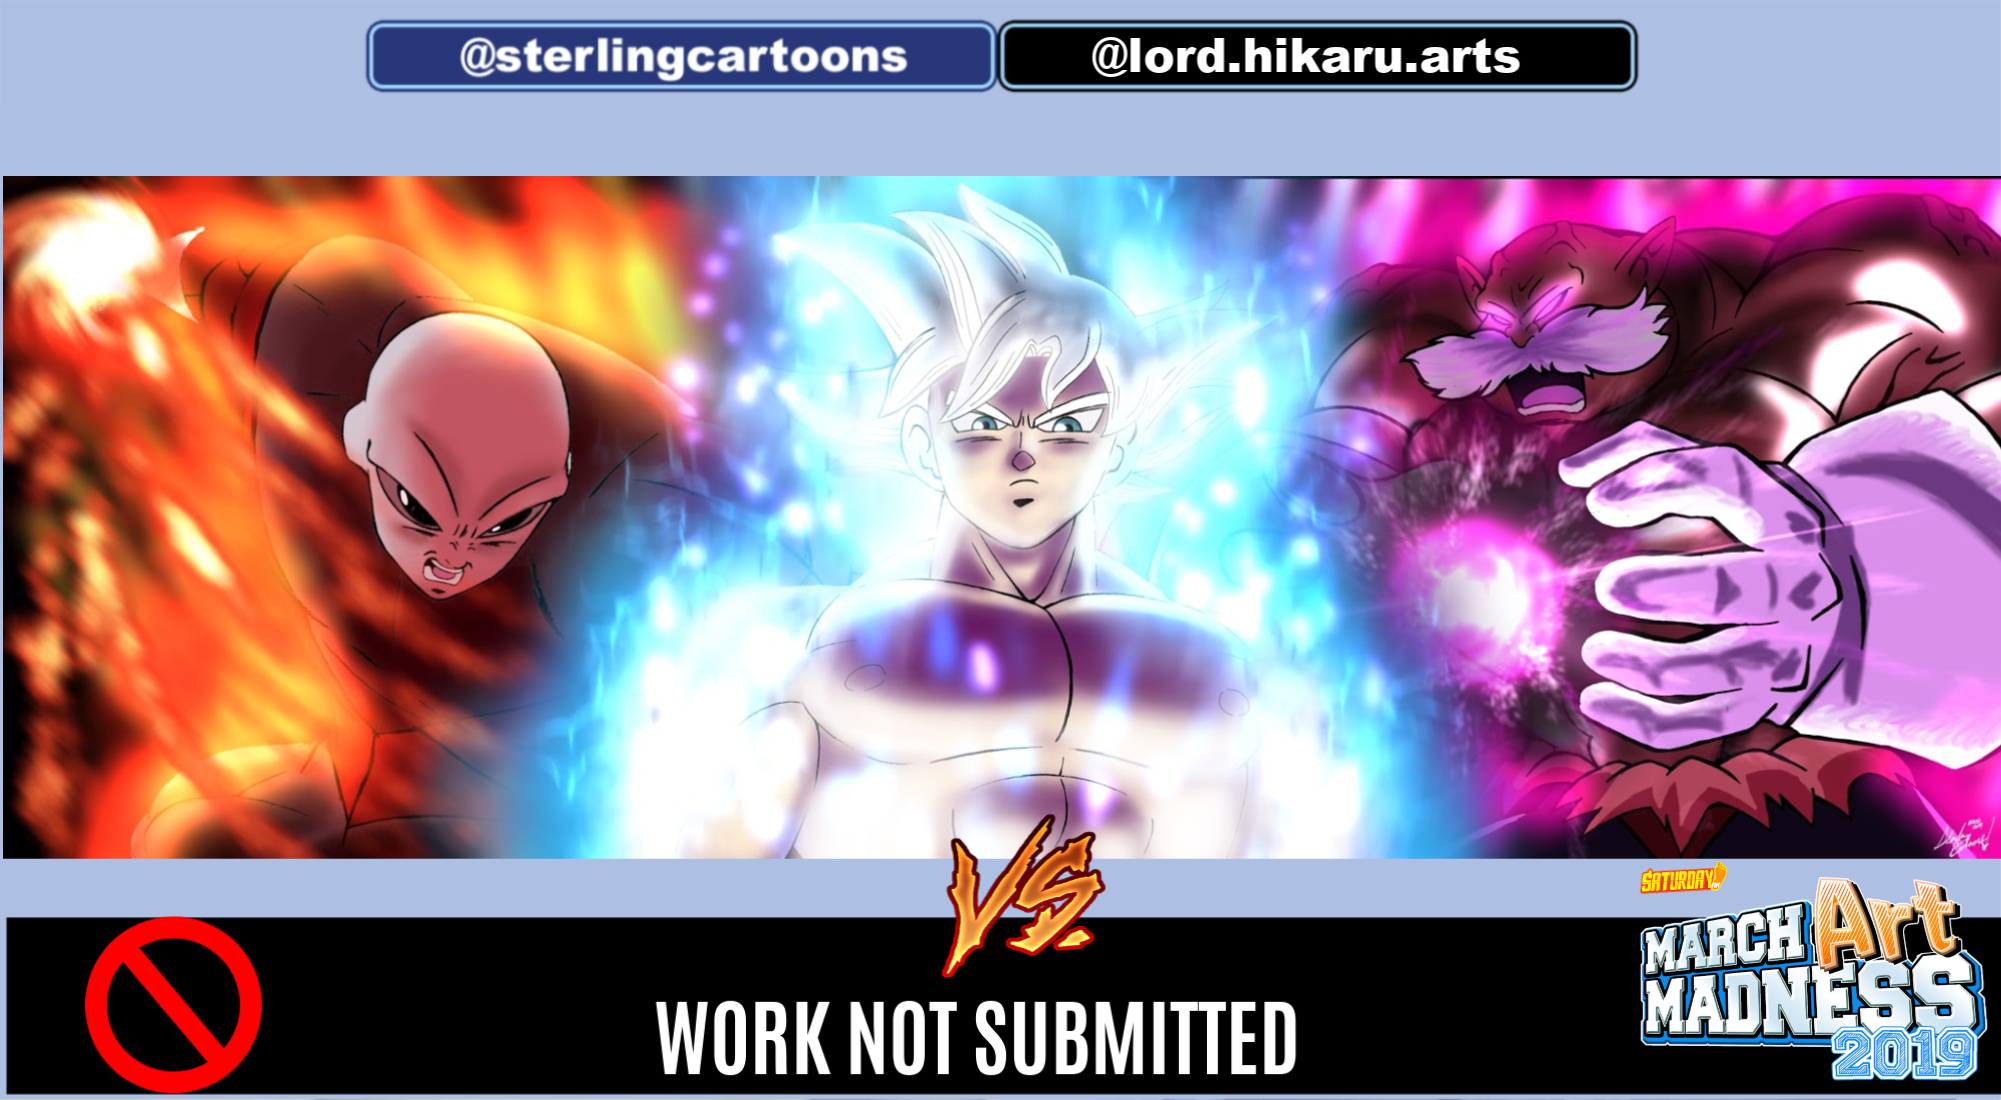 sterlingcartoons v lordhikaru (1).png